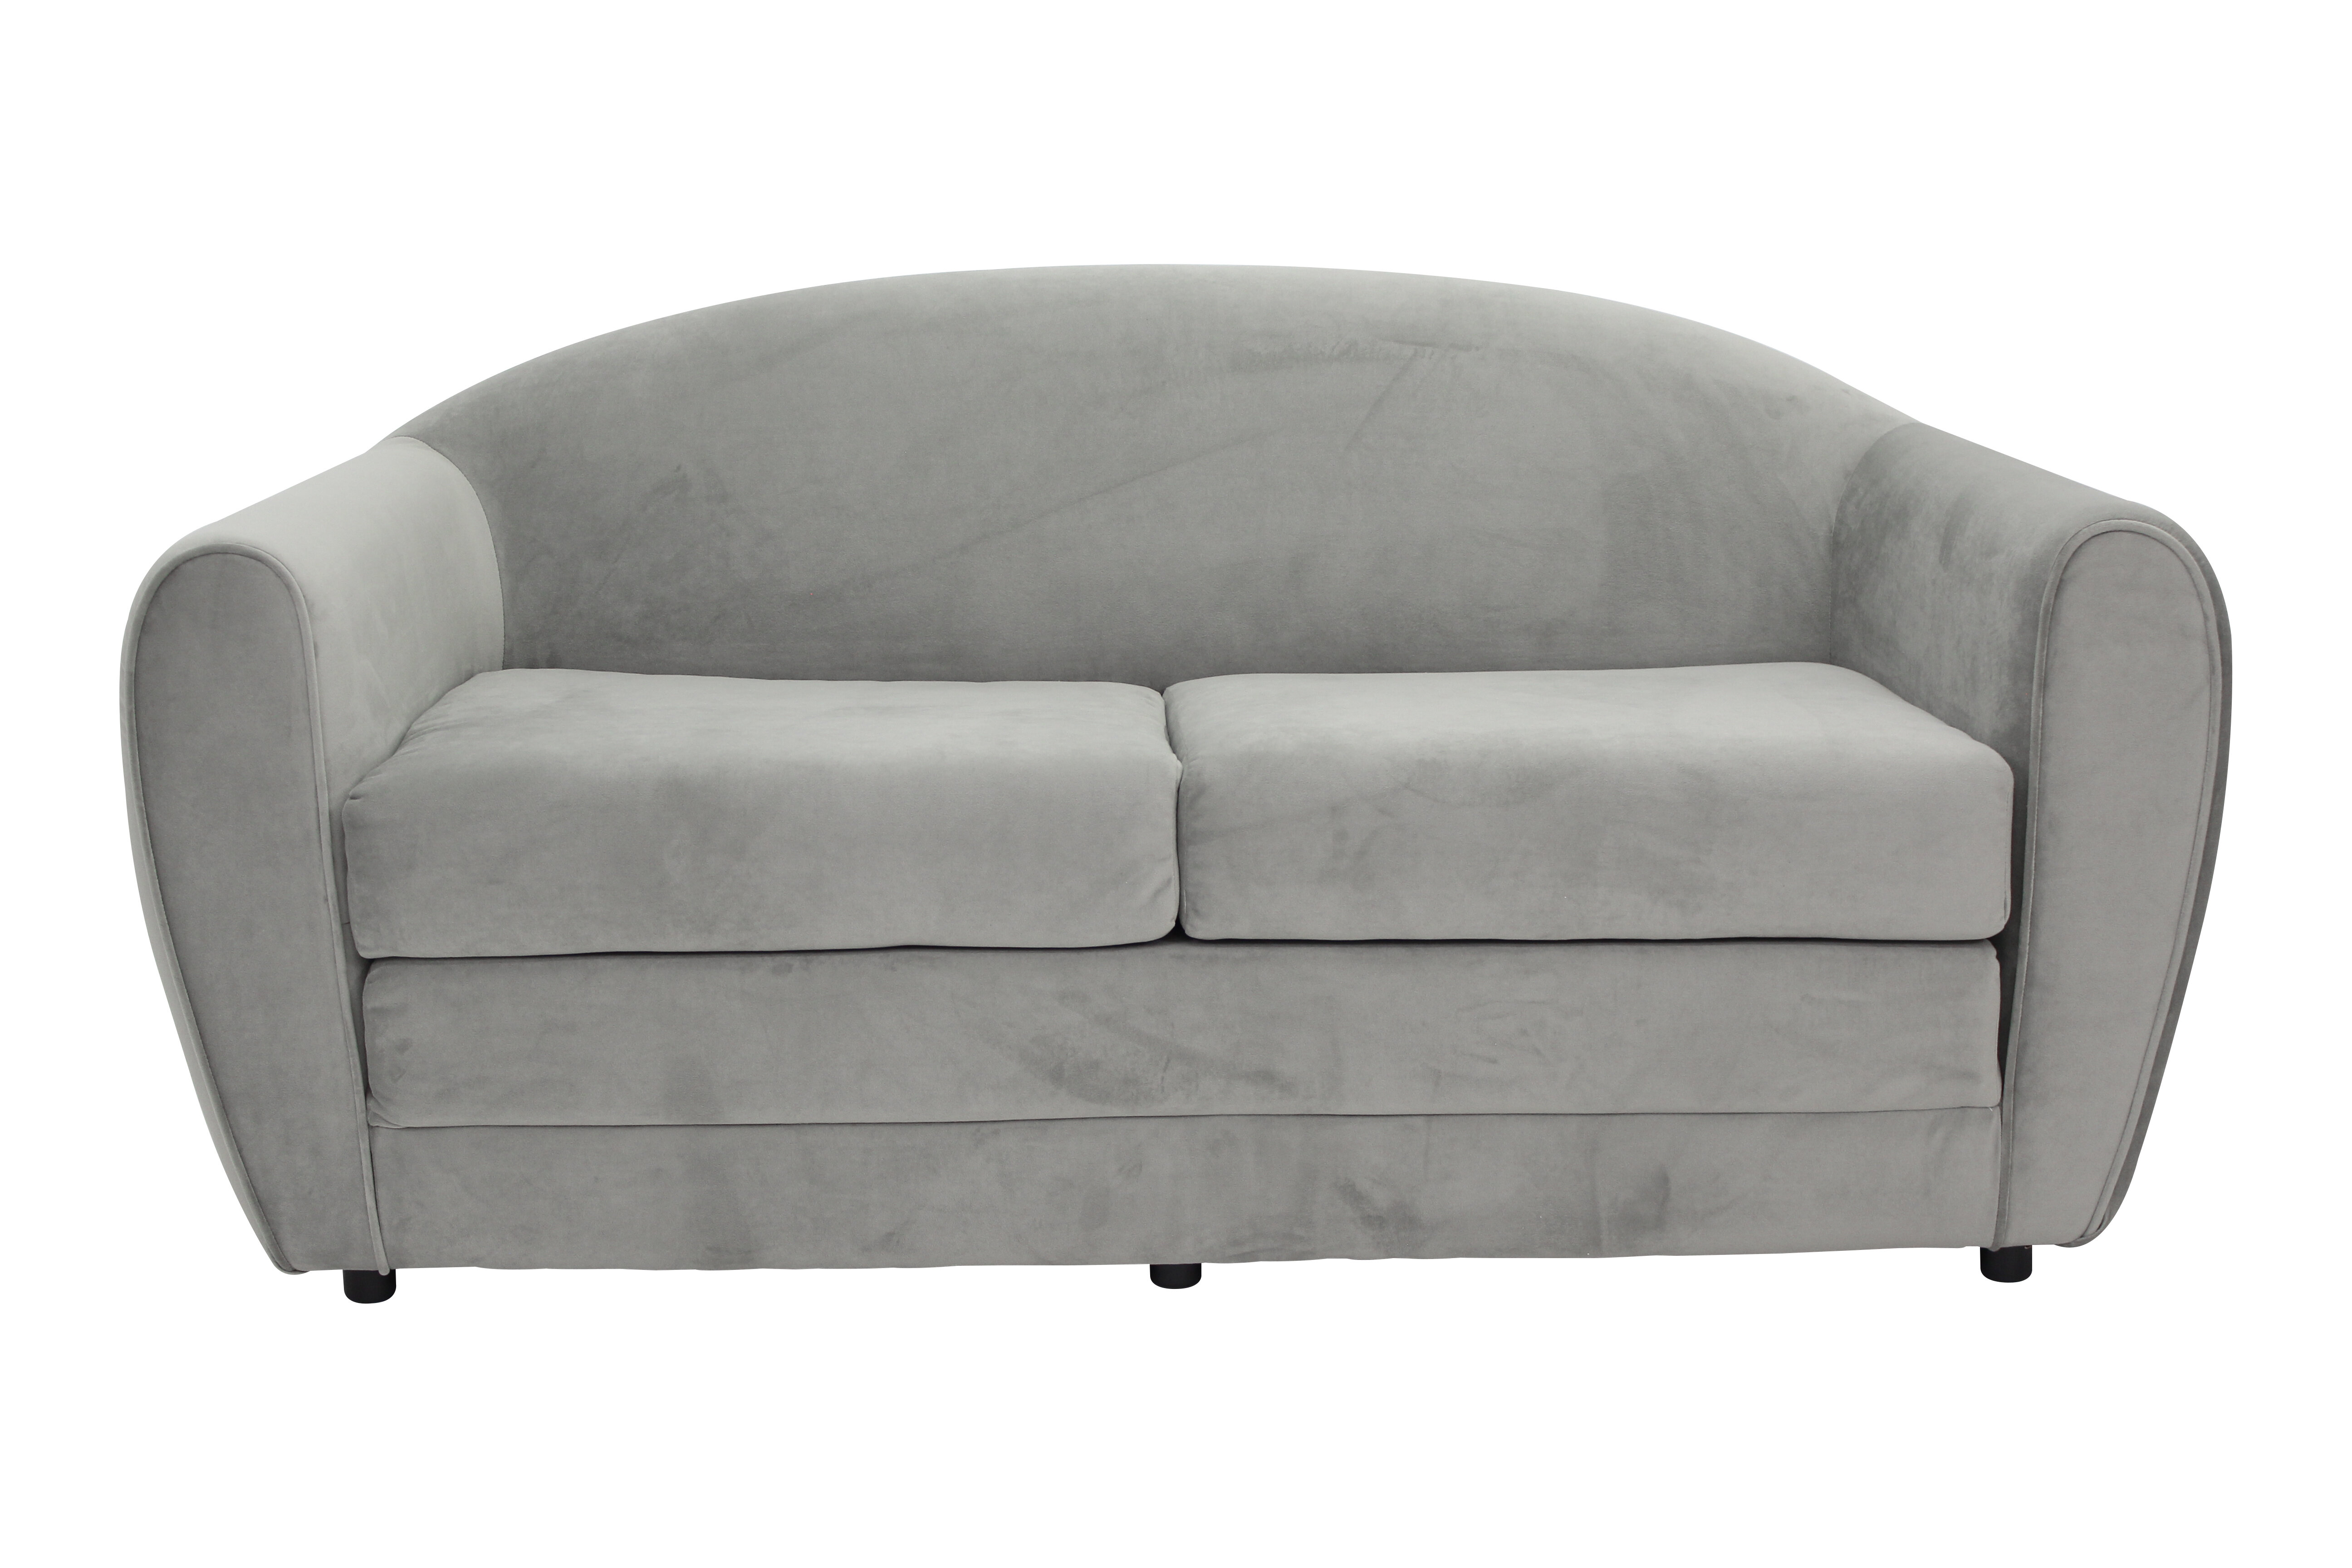 wid loveseat hei cream p miracle upholstery motion prod measurements simmons qlt